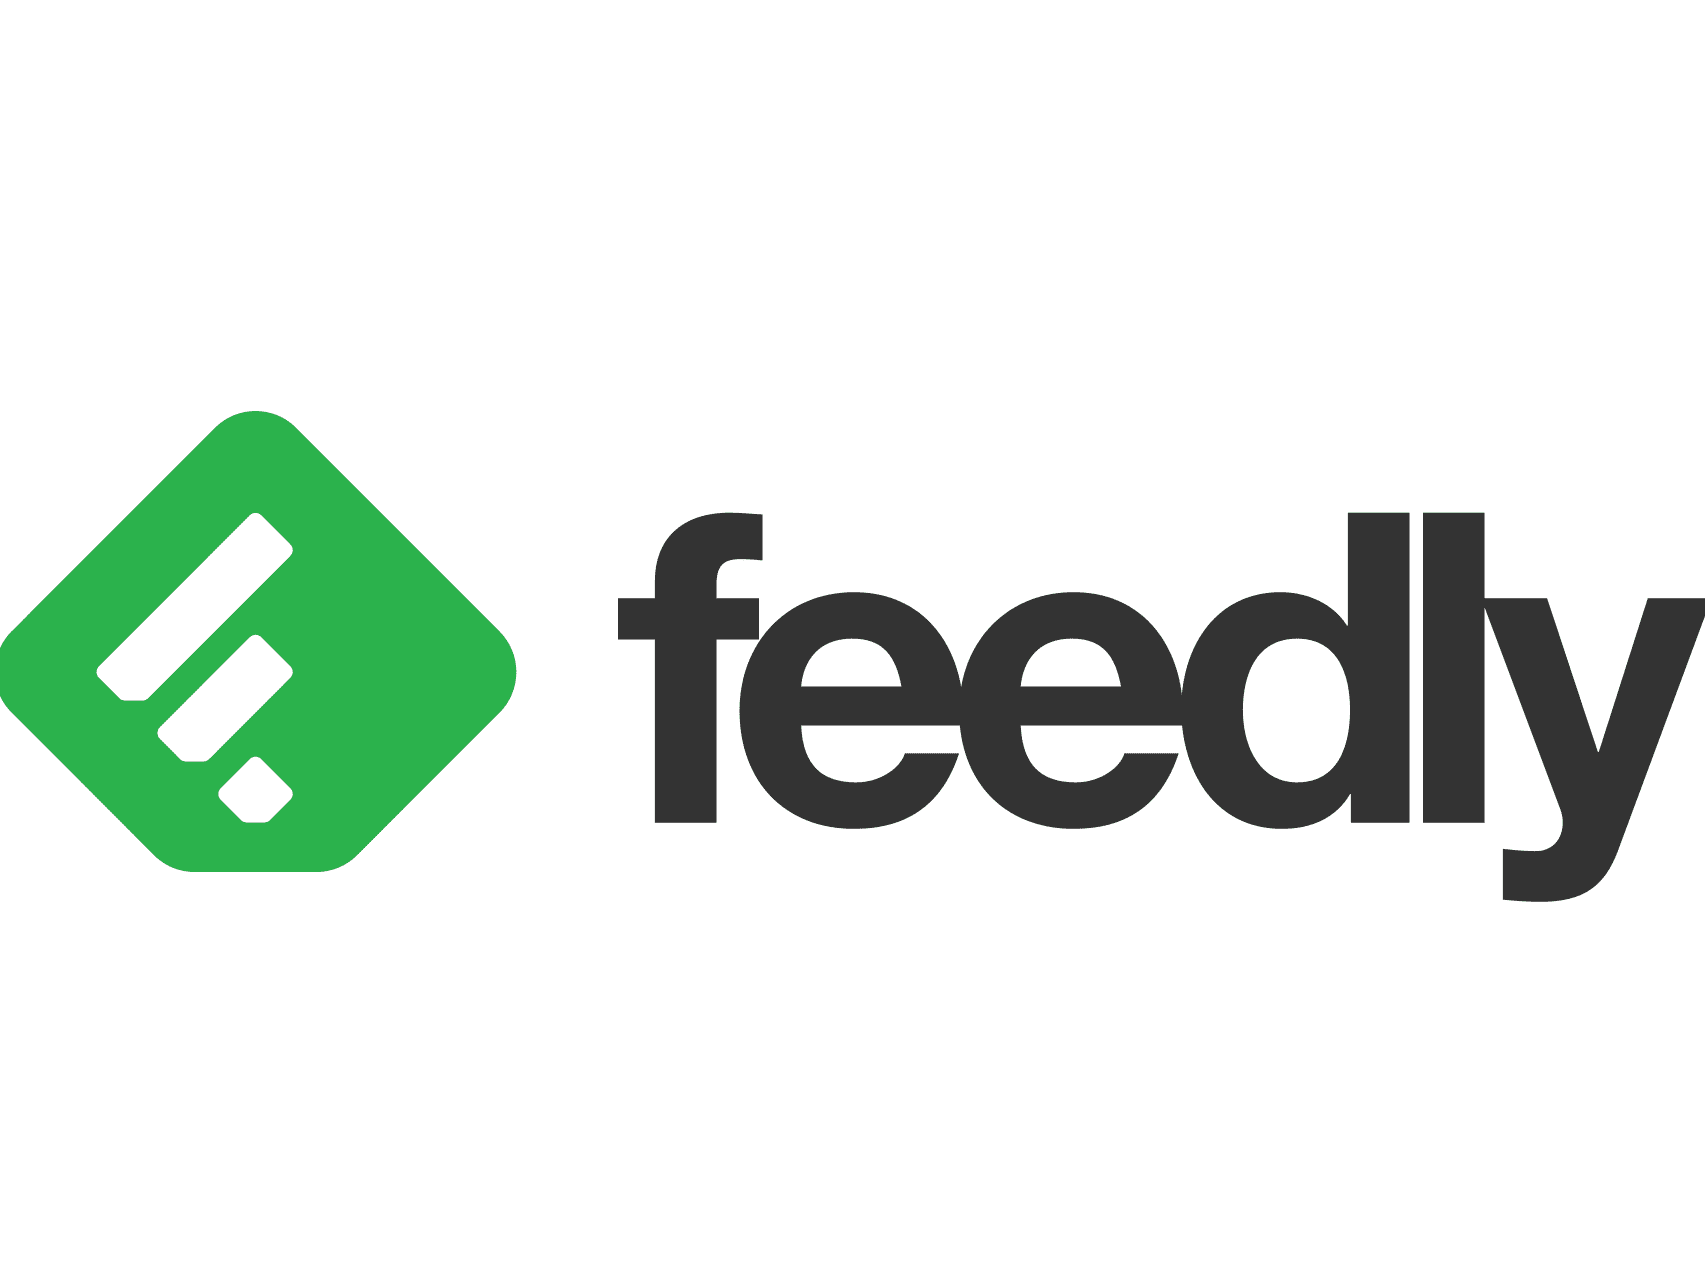 Feedly Png - Feedly Logo Png - Coloring Picture for kids   子供のぬりえHD品質